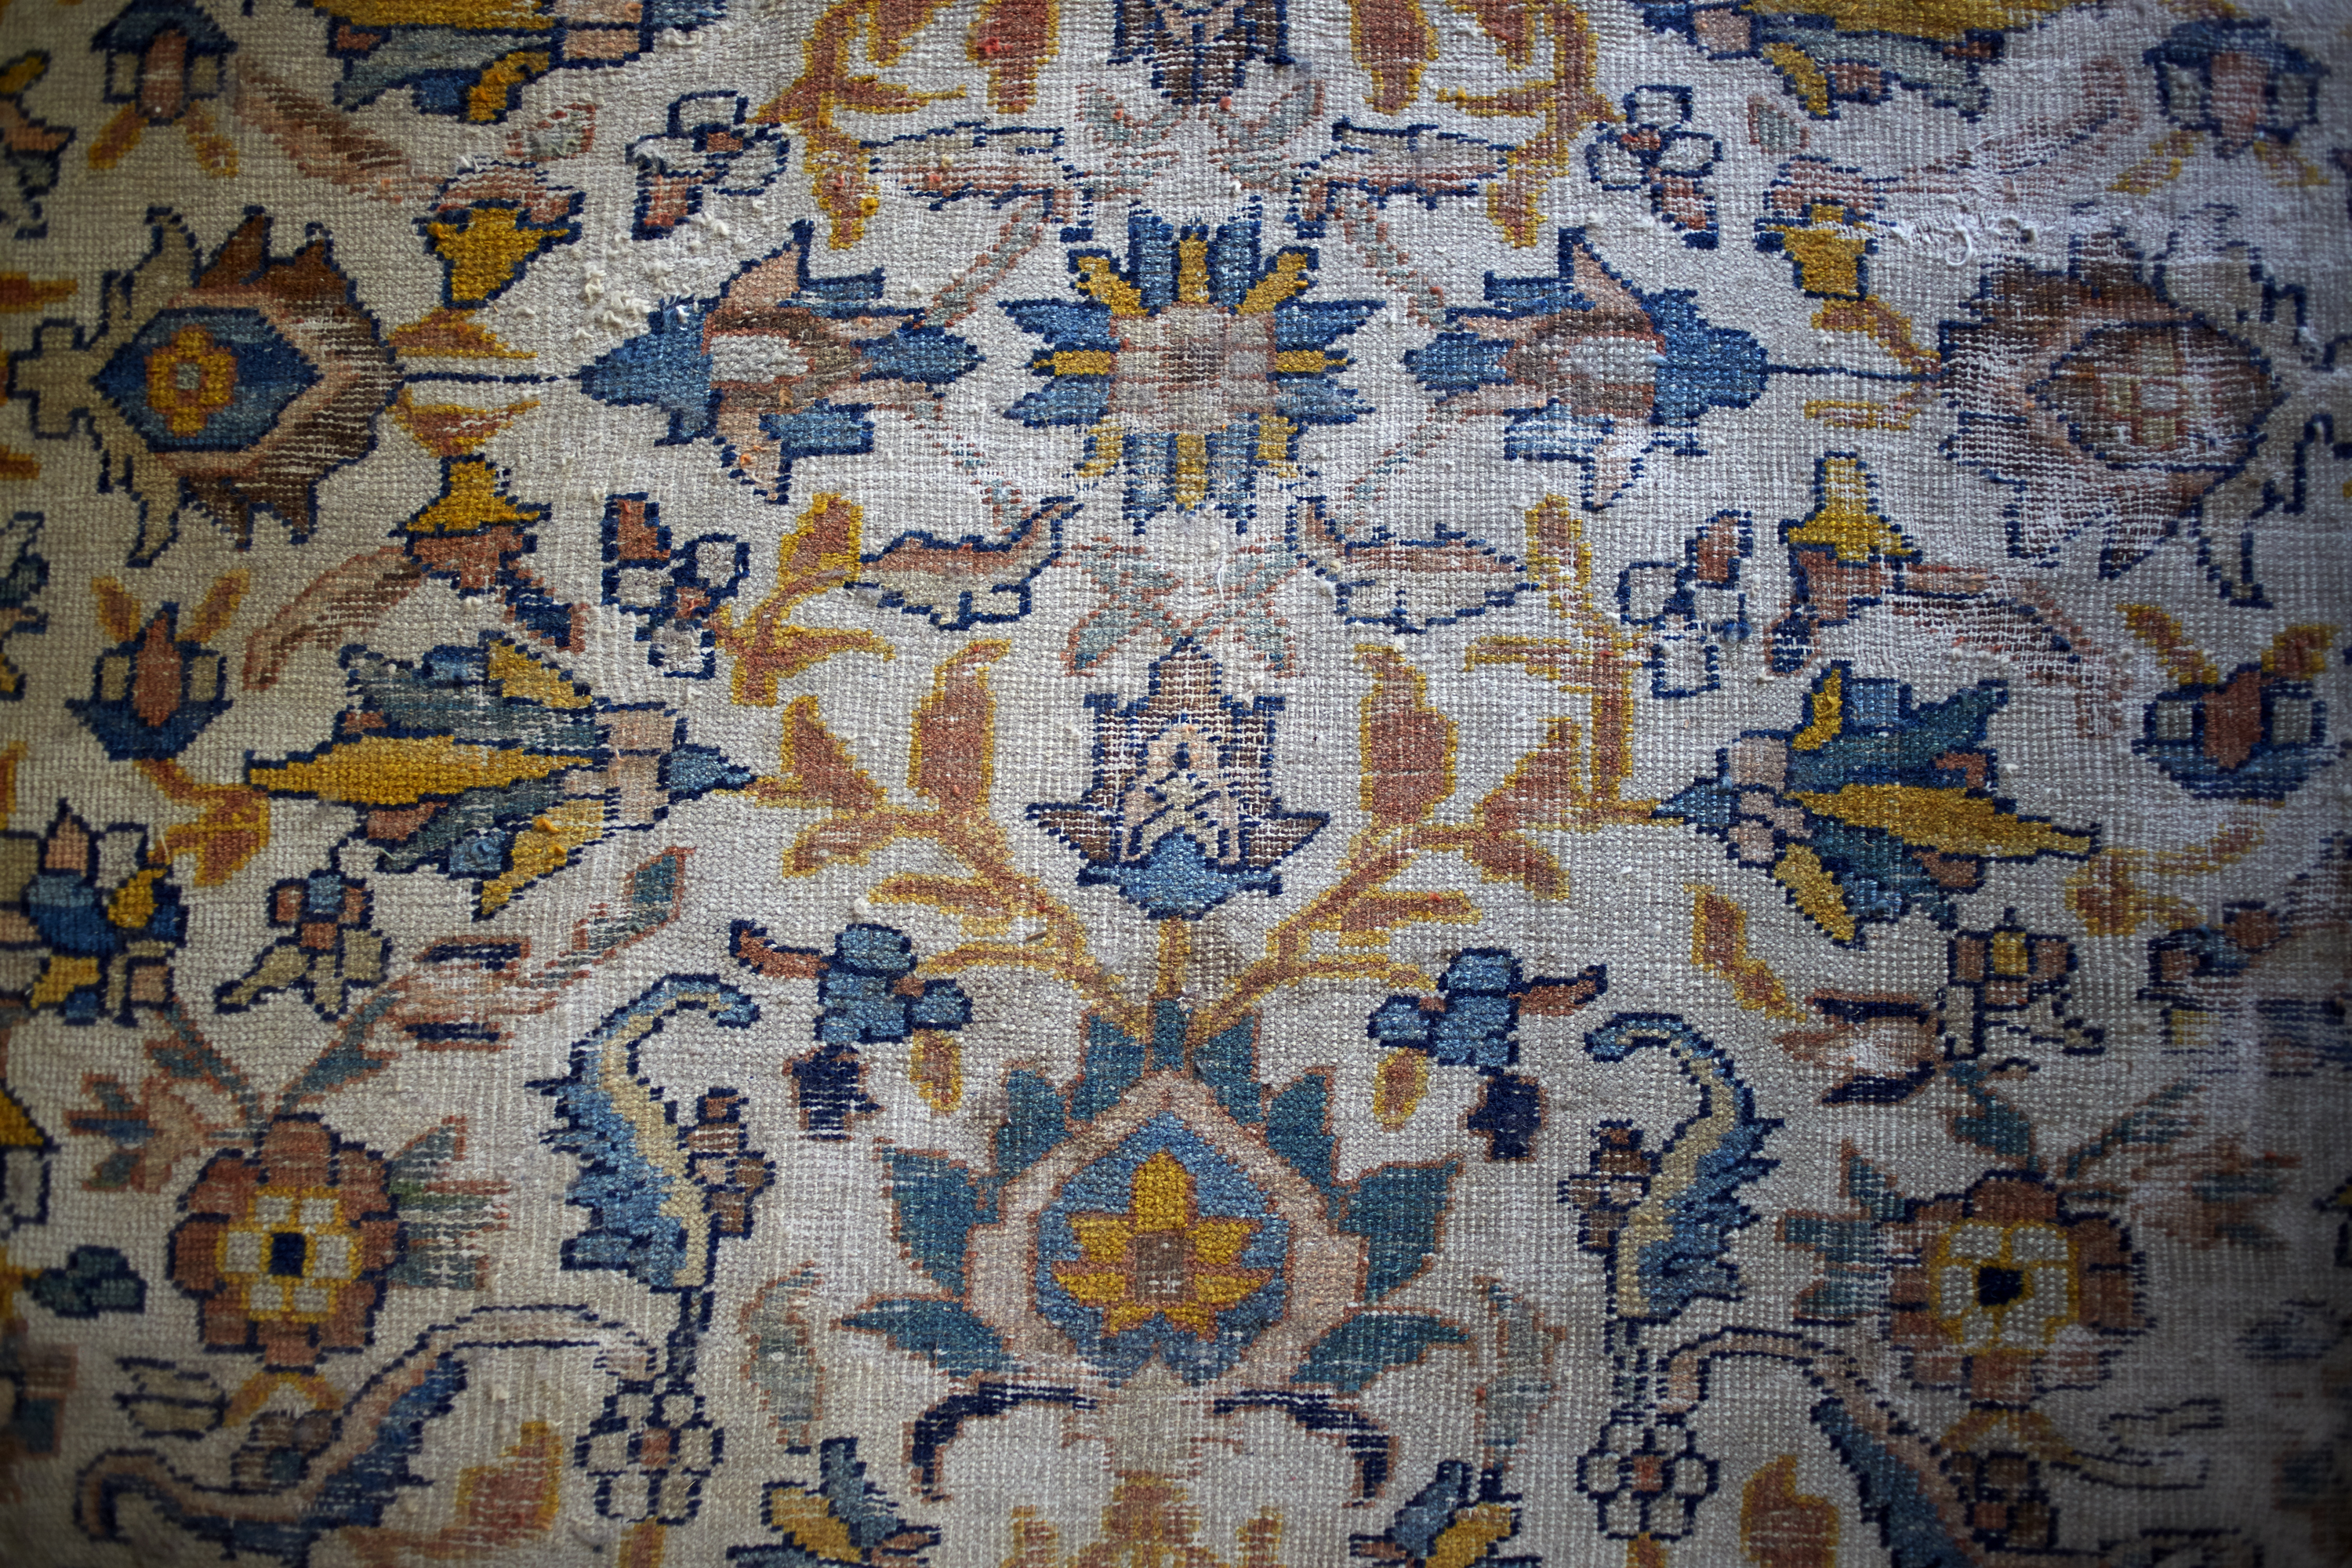 A detail of an antique rug showing a blue-and-gold pattern of flowers and vines.